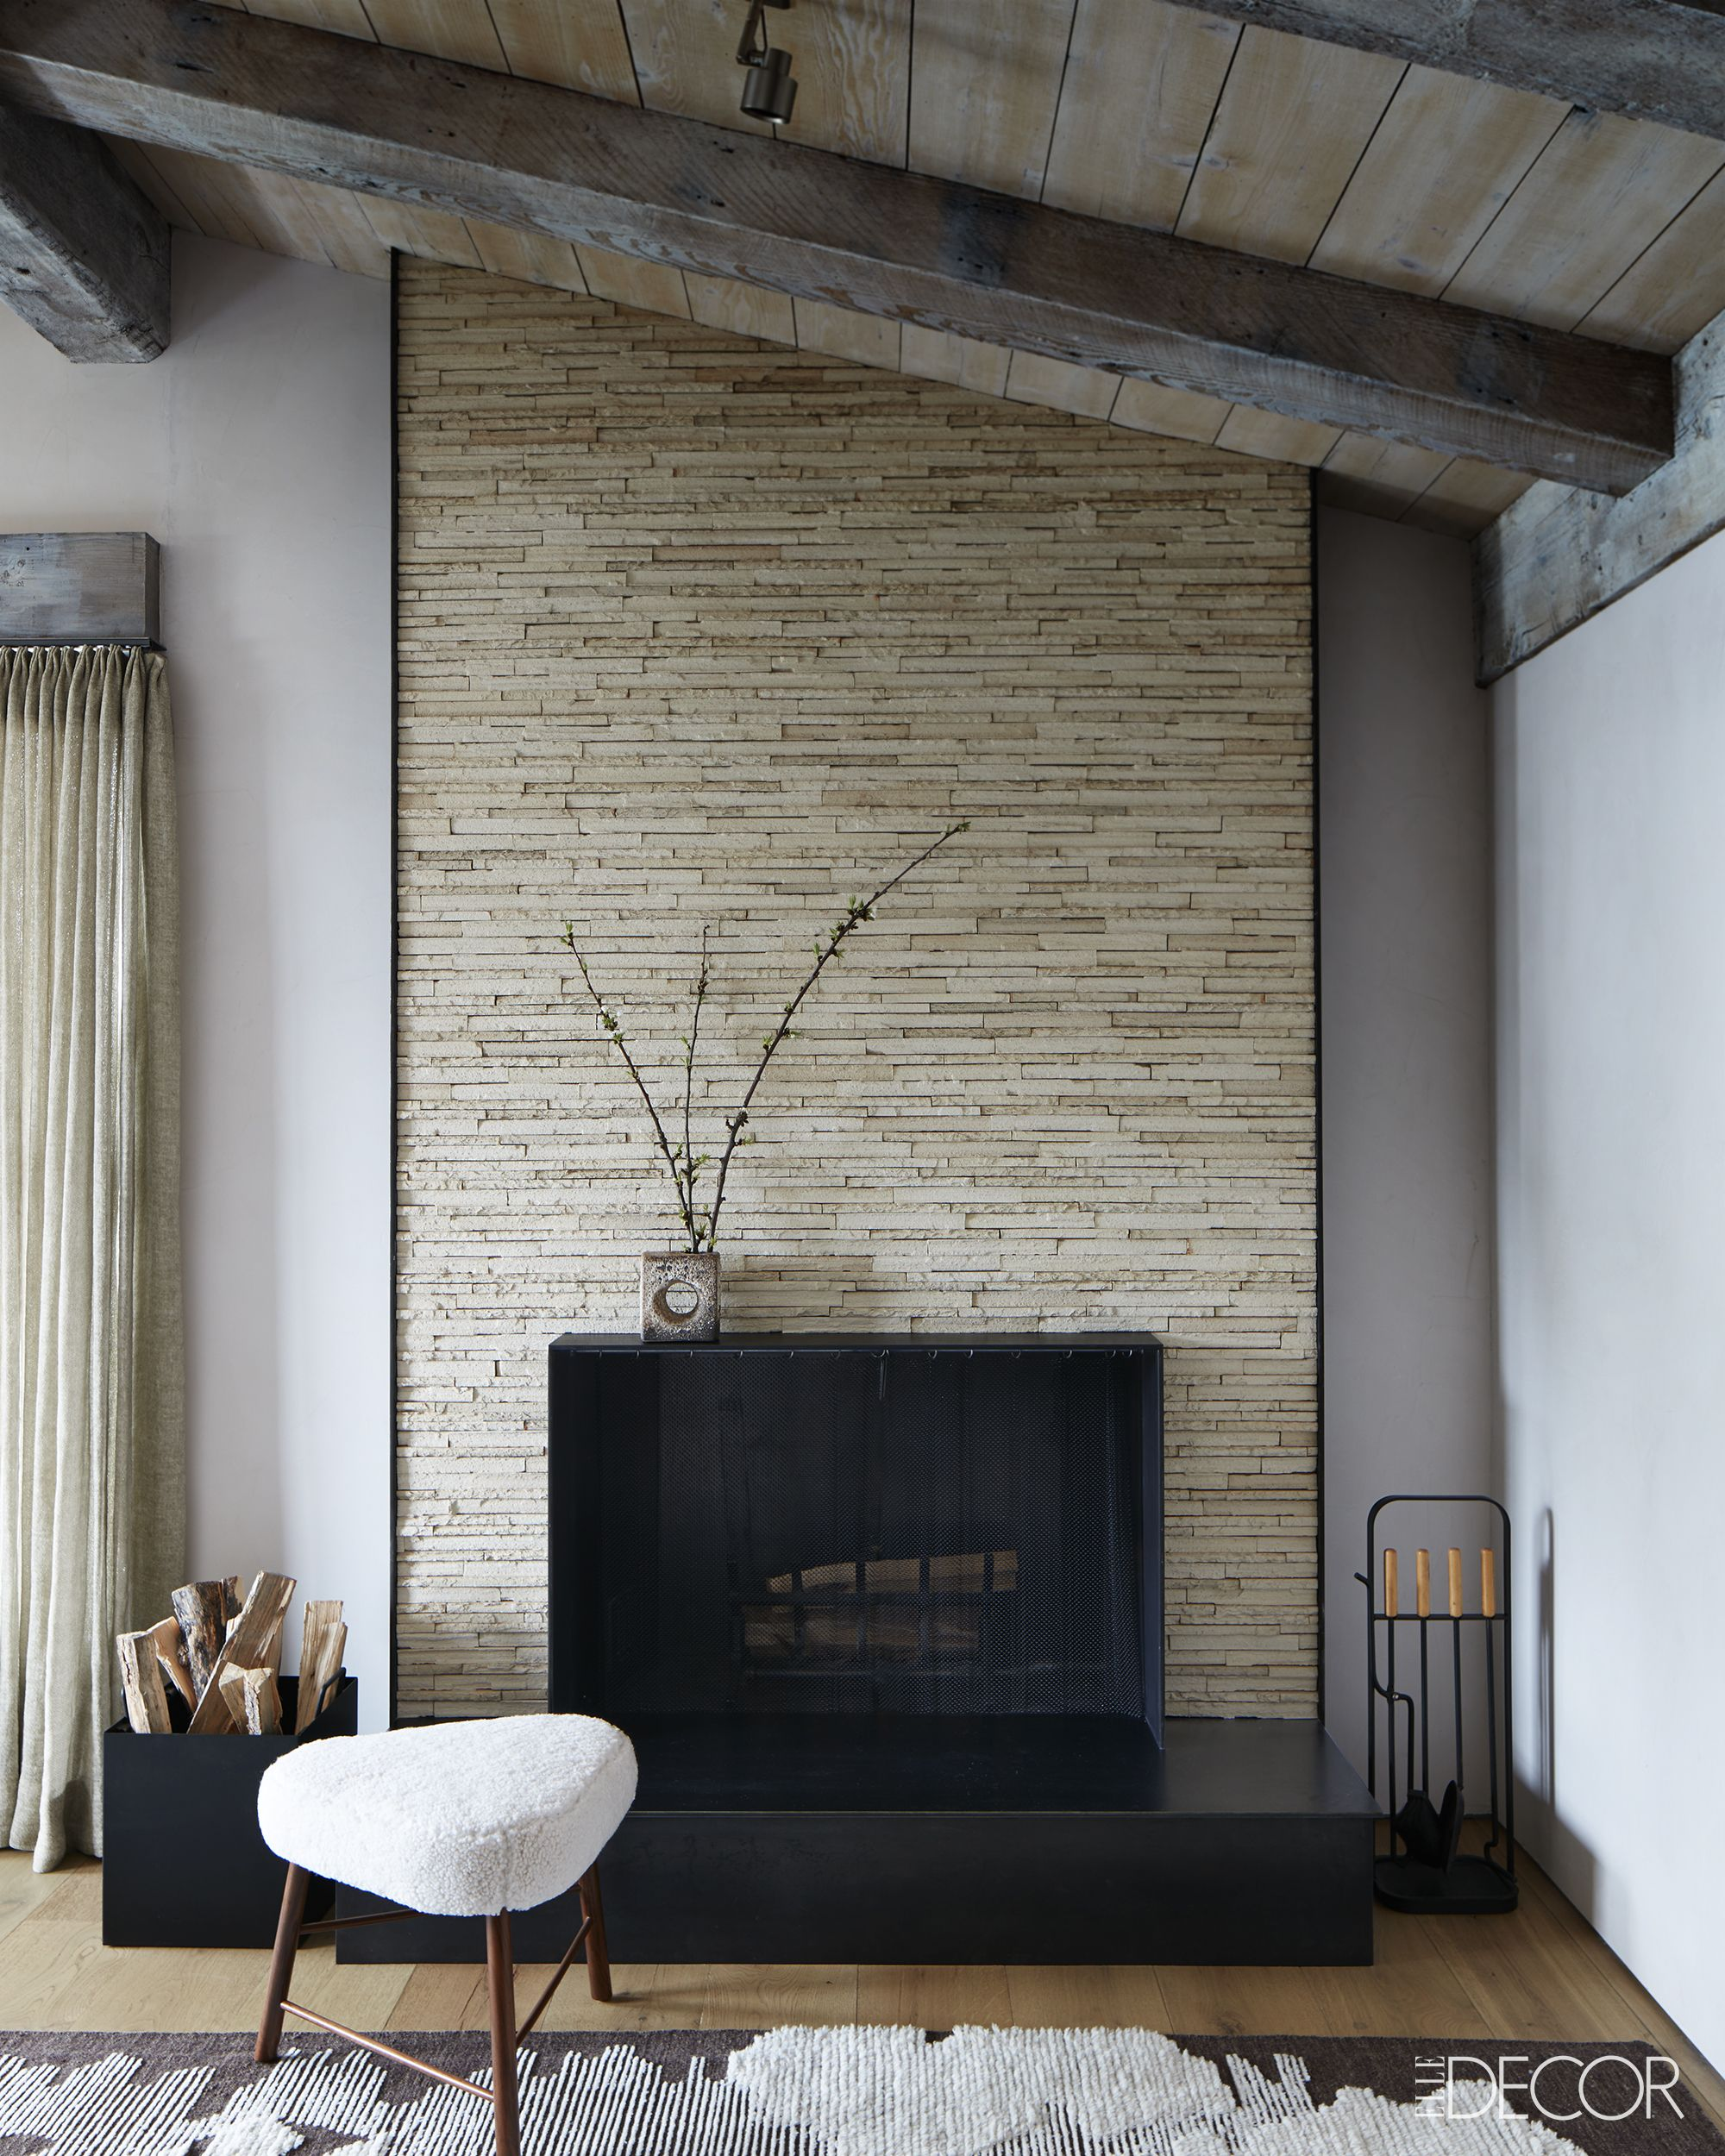 Black steel fireplace surround in rustic chic bedroom in ski chalet on Hello Lovely